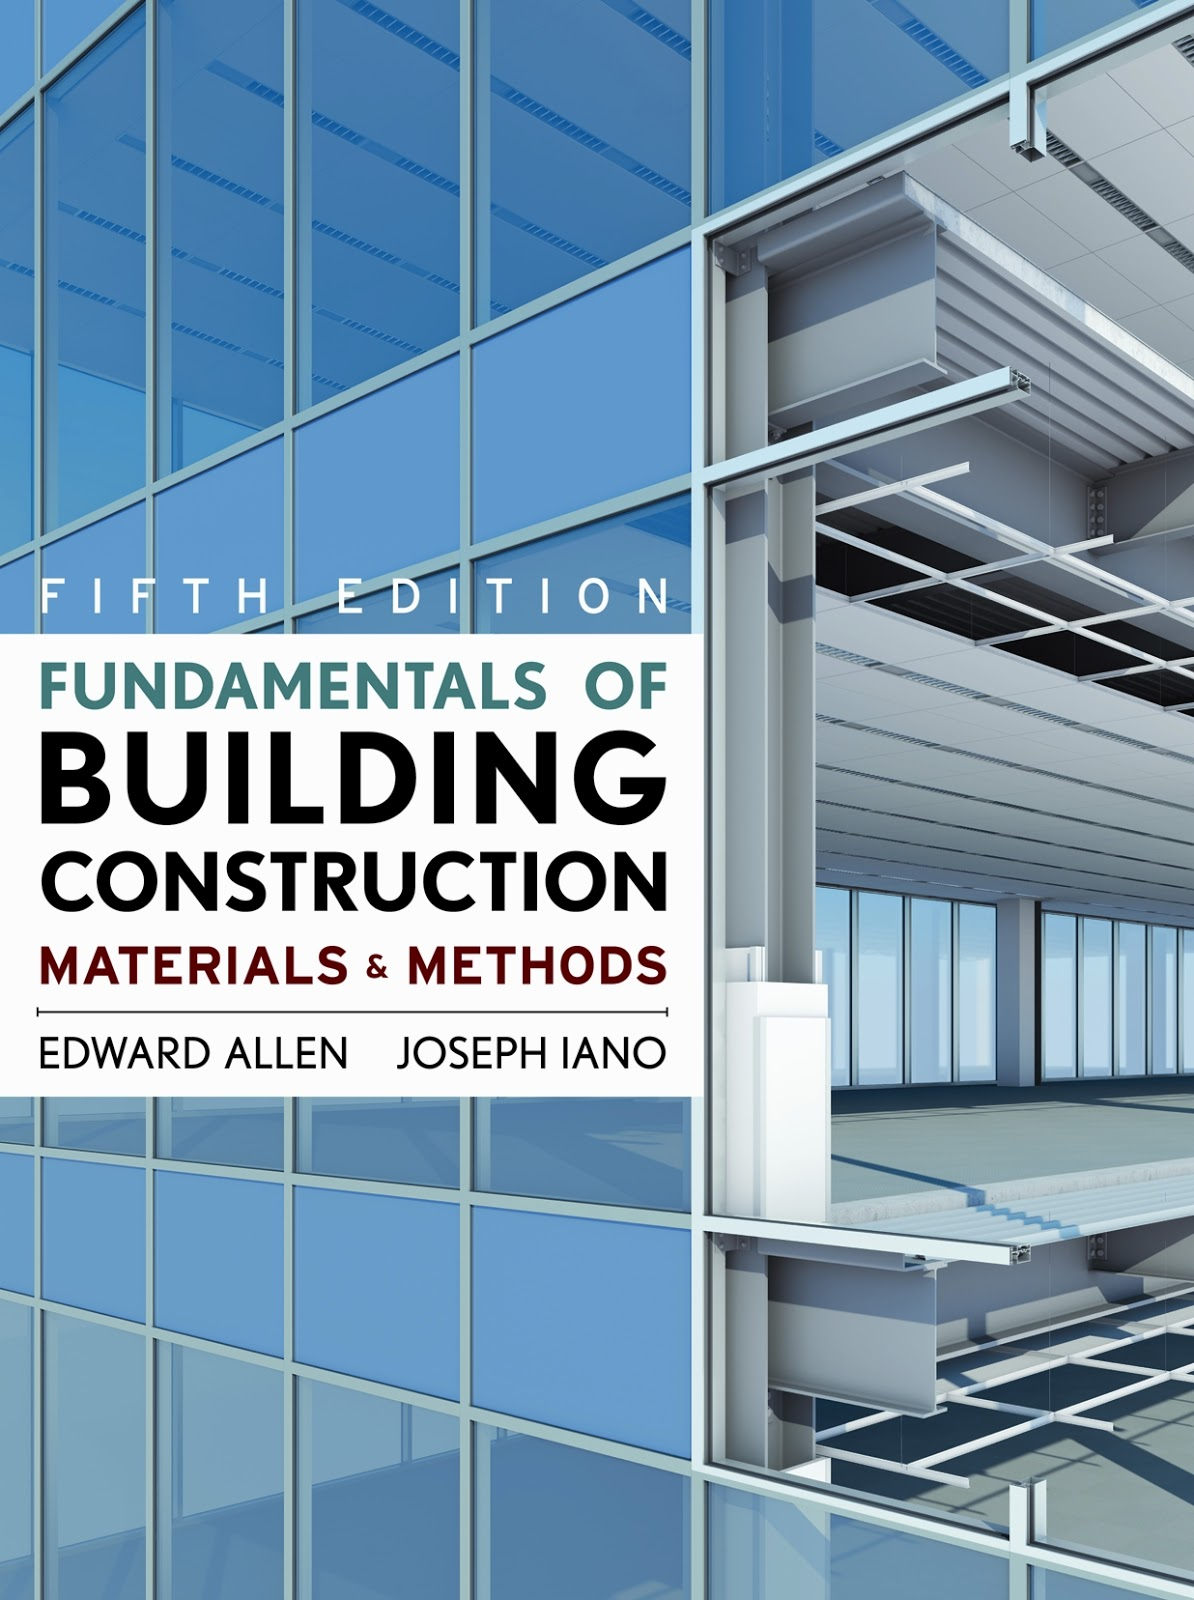 Book: Fundamentals of Building Construction by Edward Allen & Joseph Iano